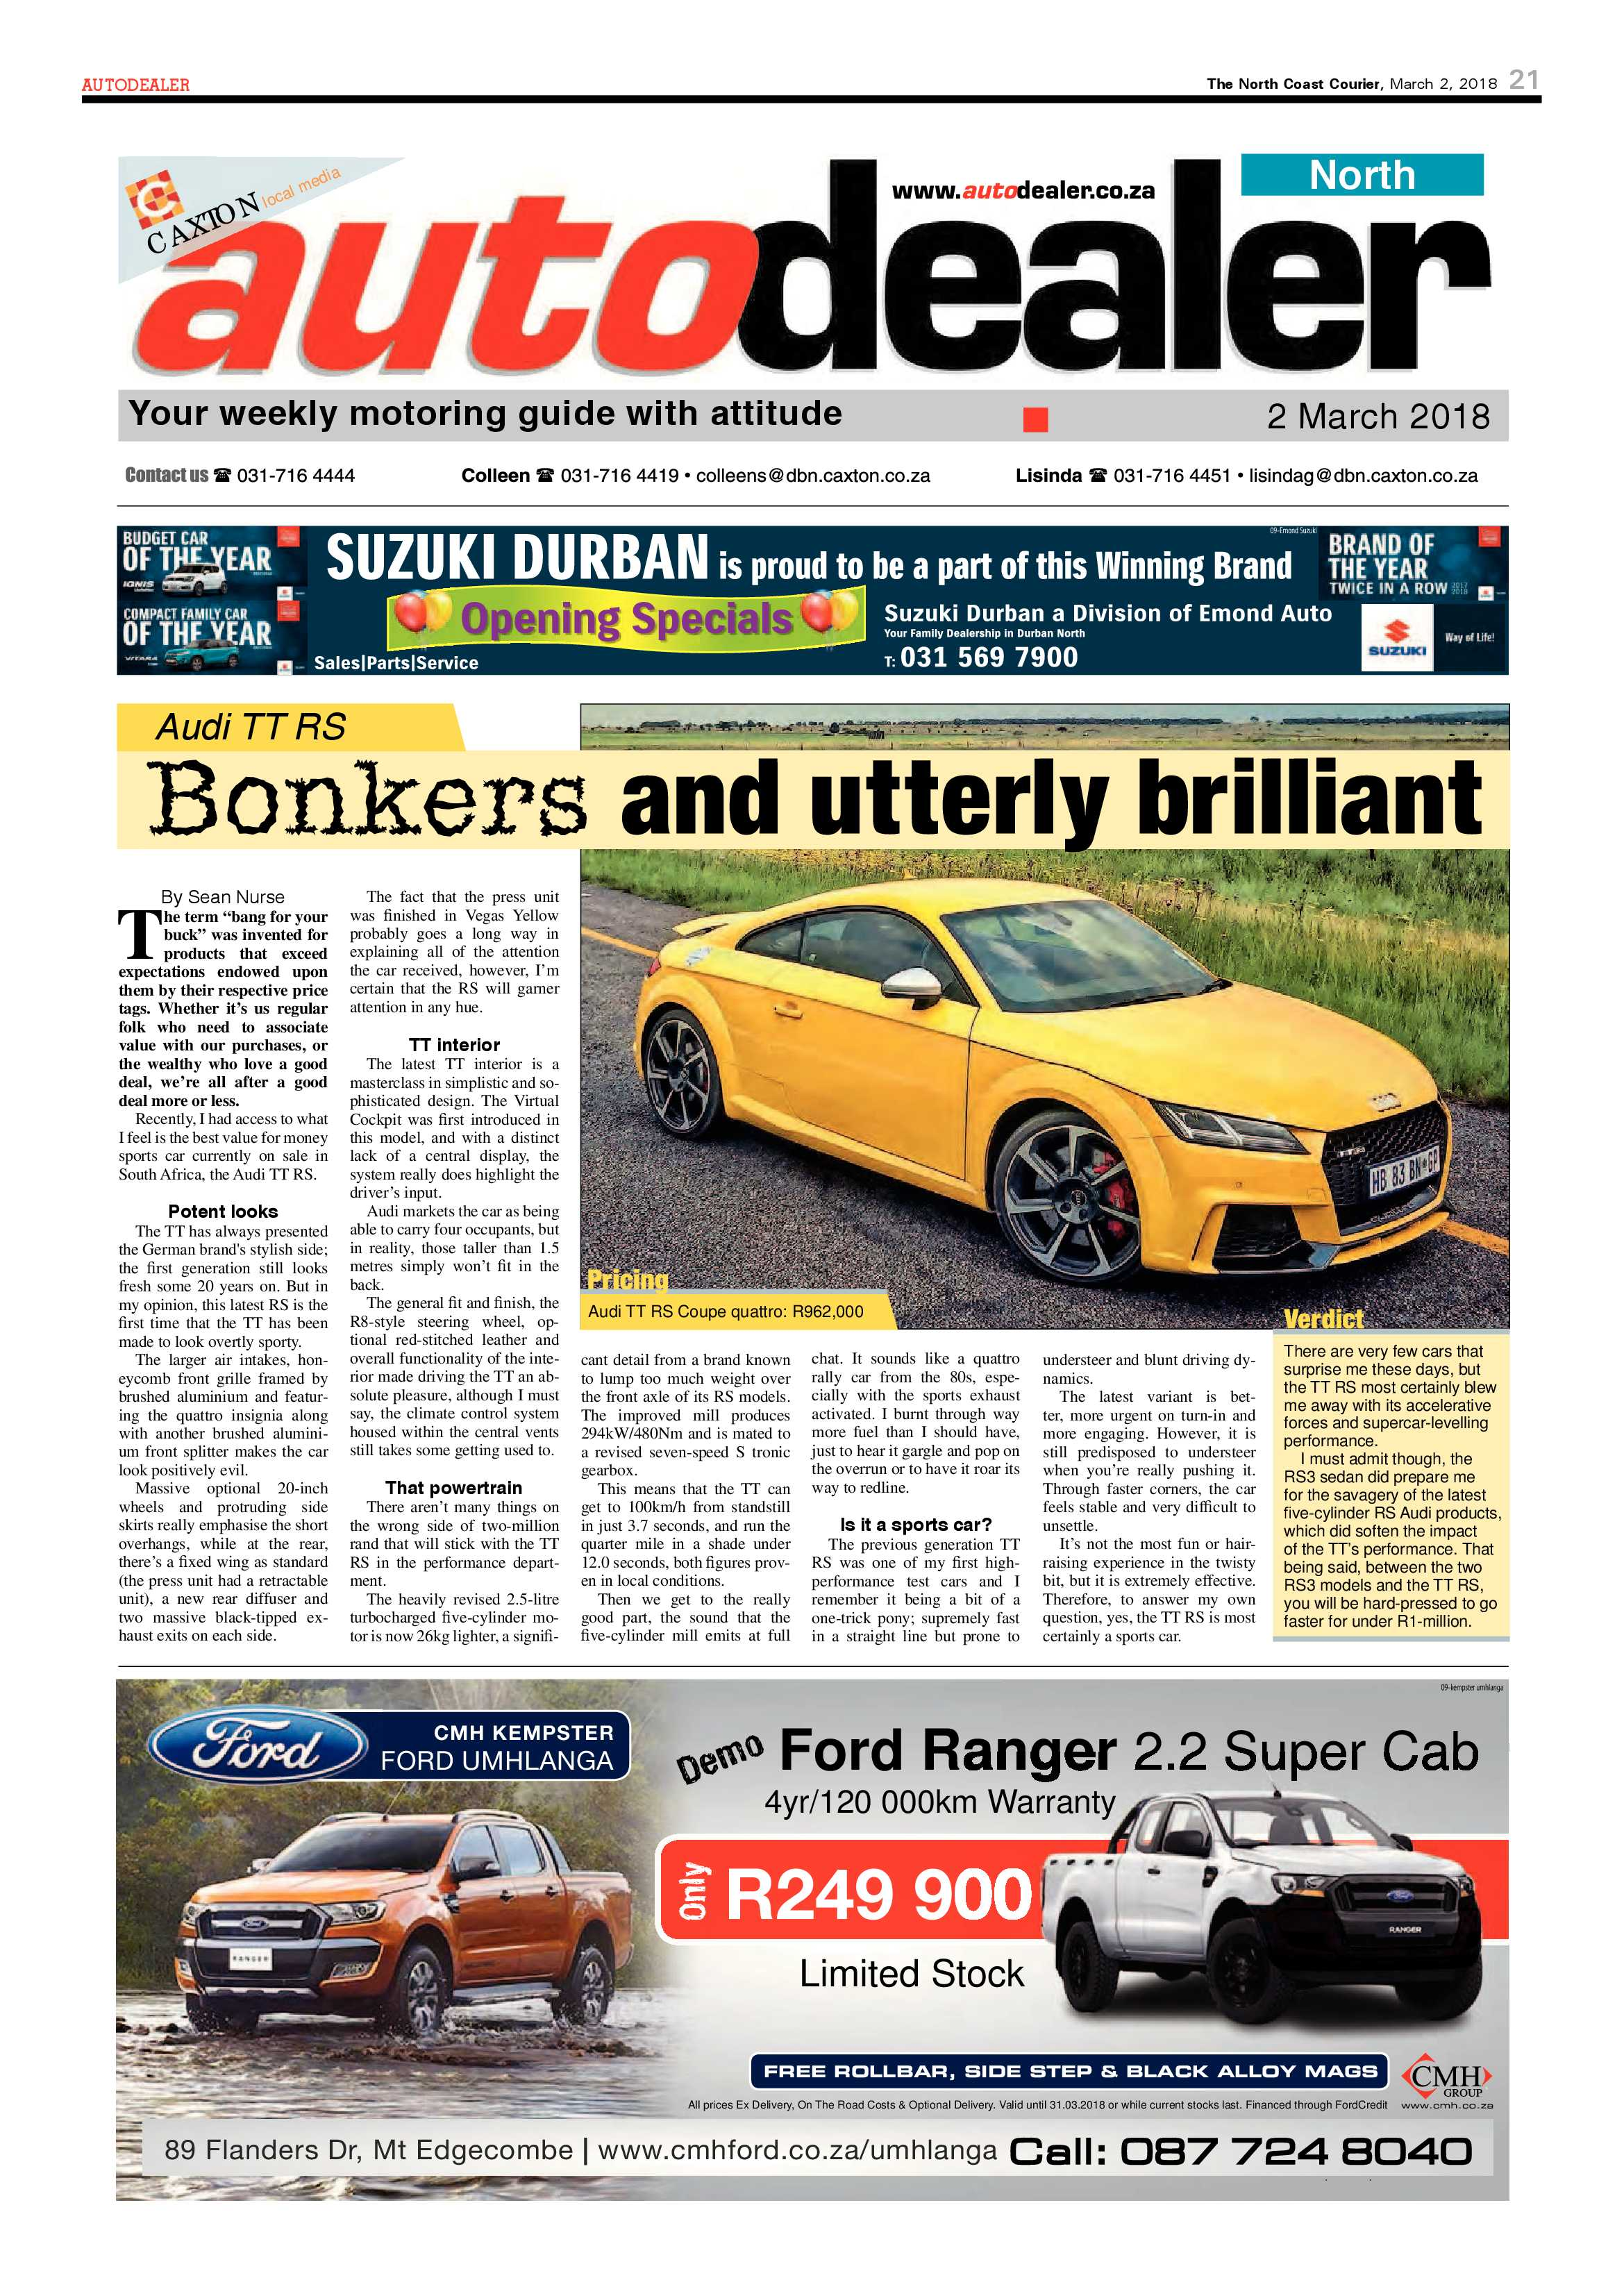 The North Coast Courier – 02 March 2018